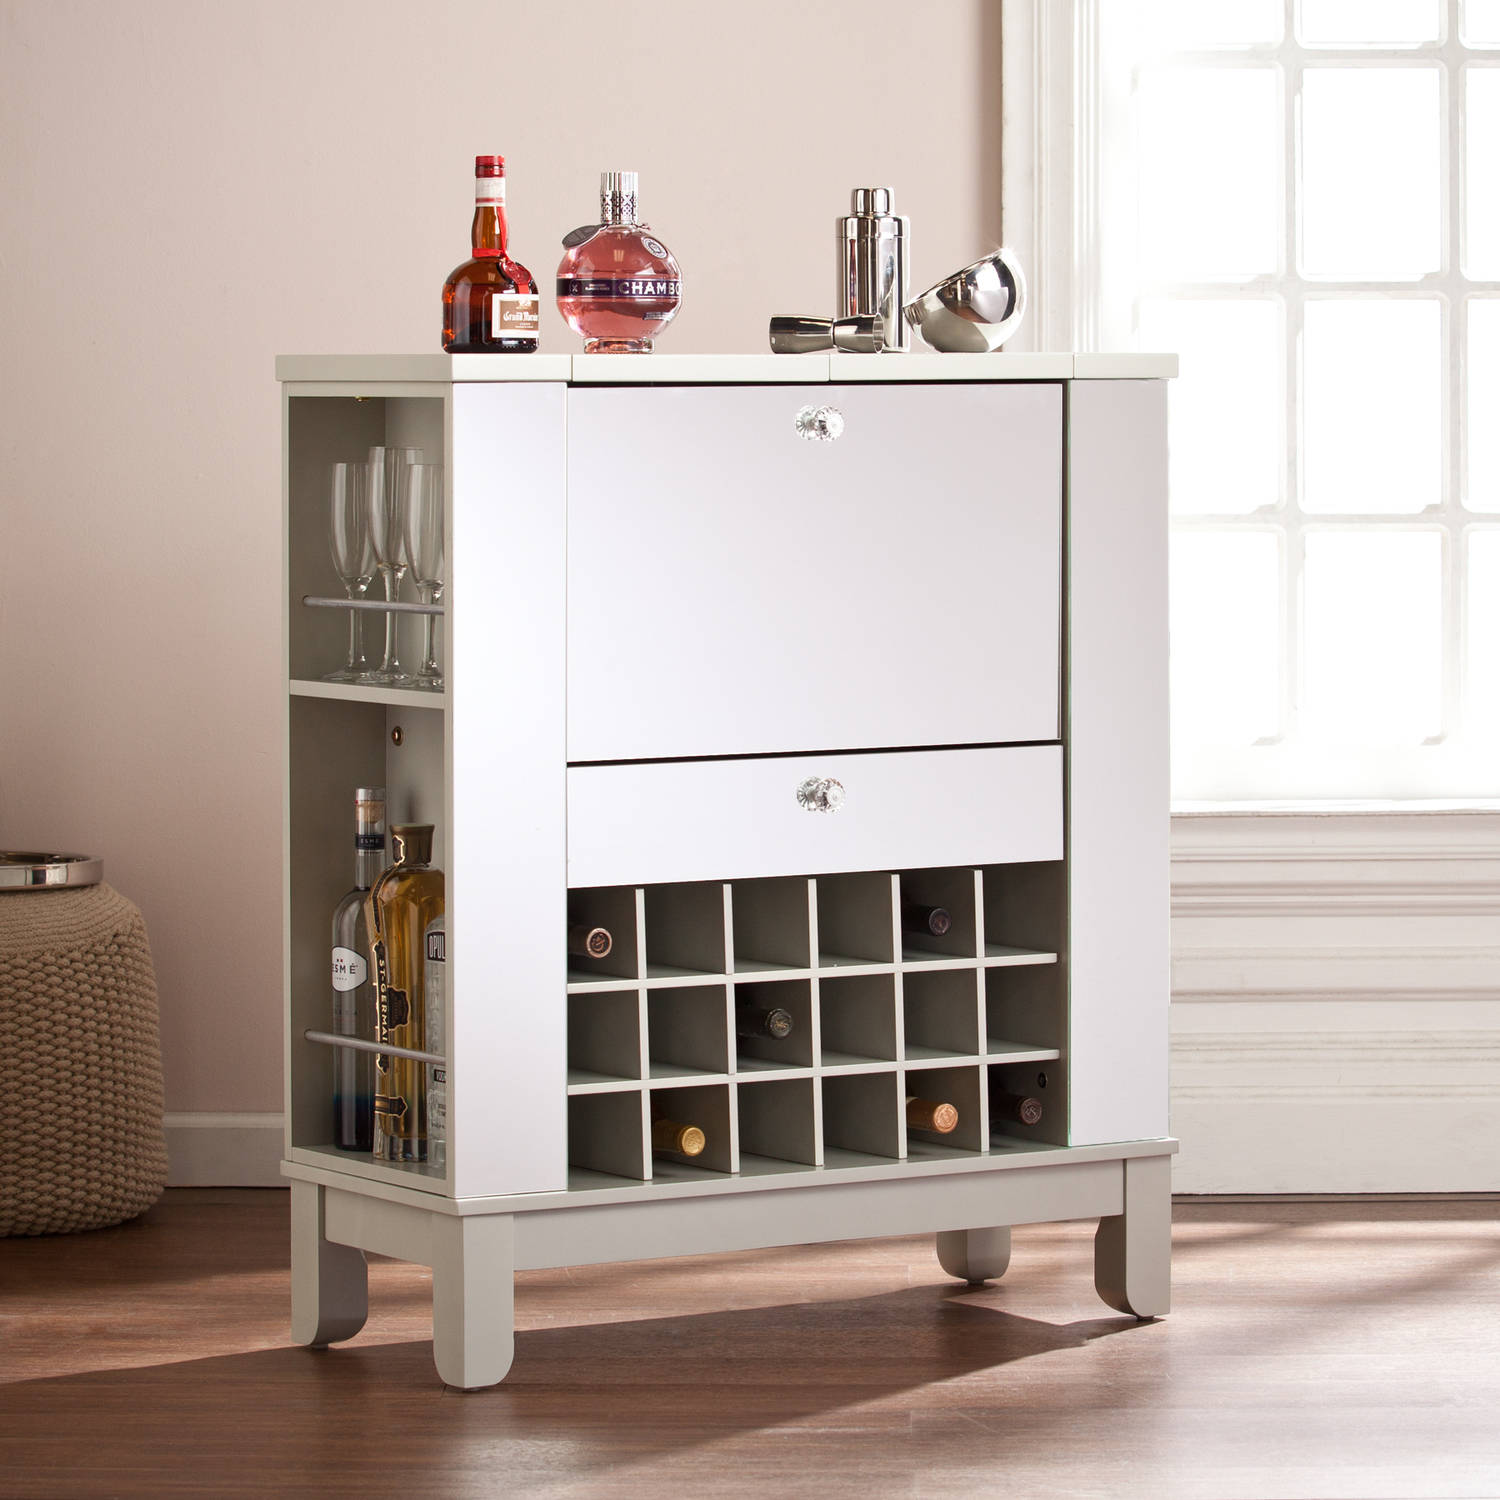 Southern Enterprises Illusions Mirrored Fold-Out Wine/Bar Cabinet, Silver